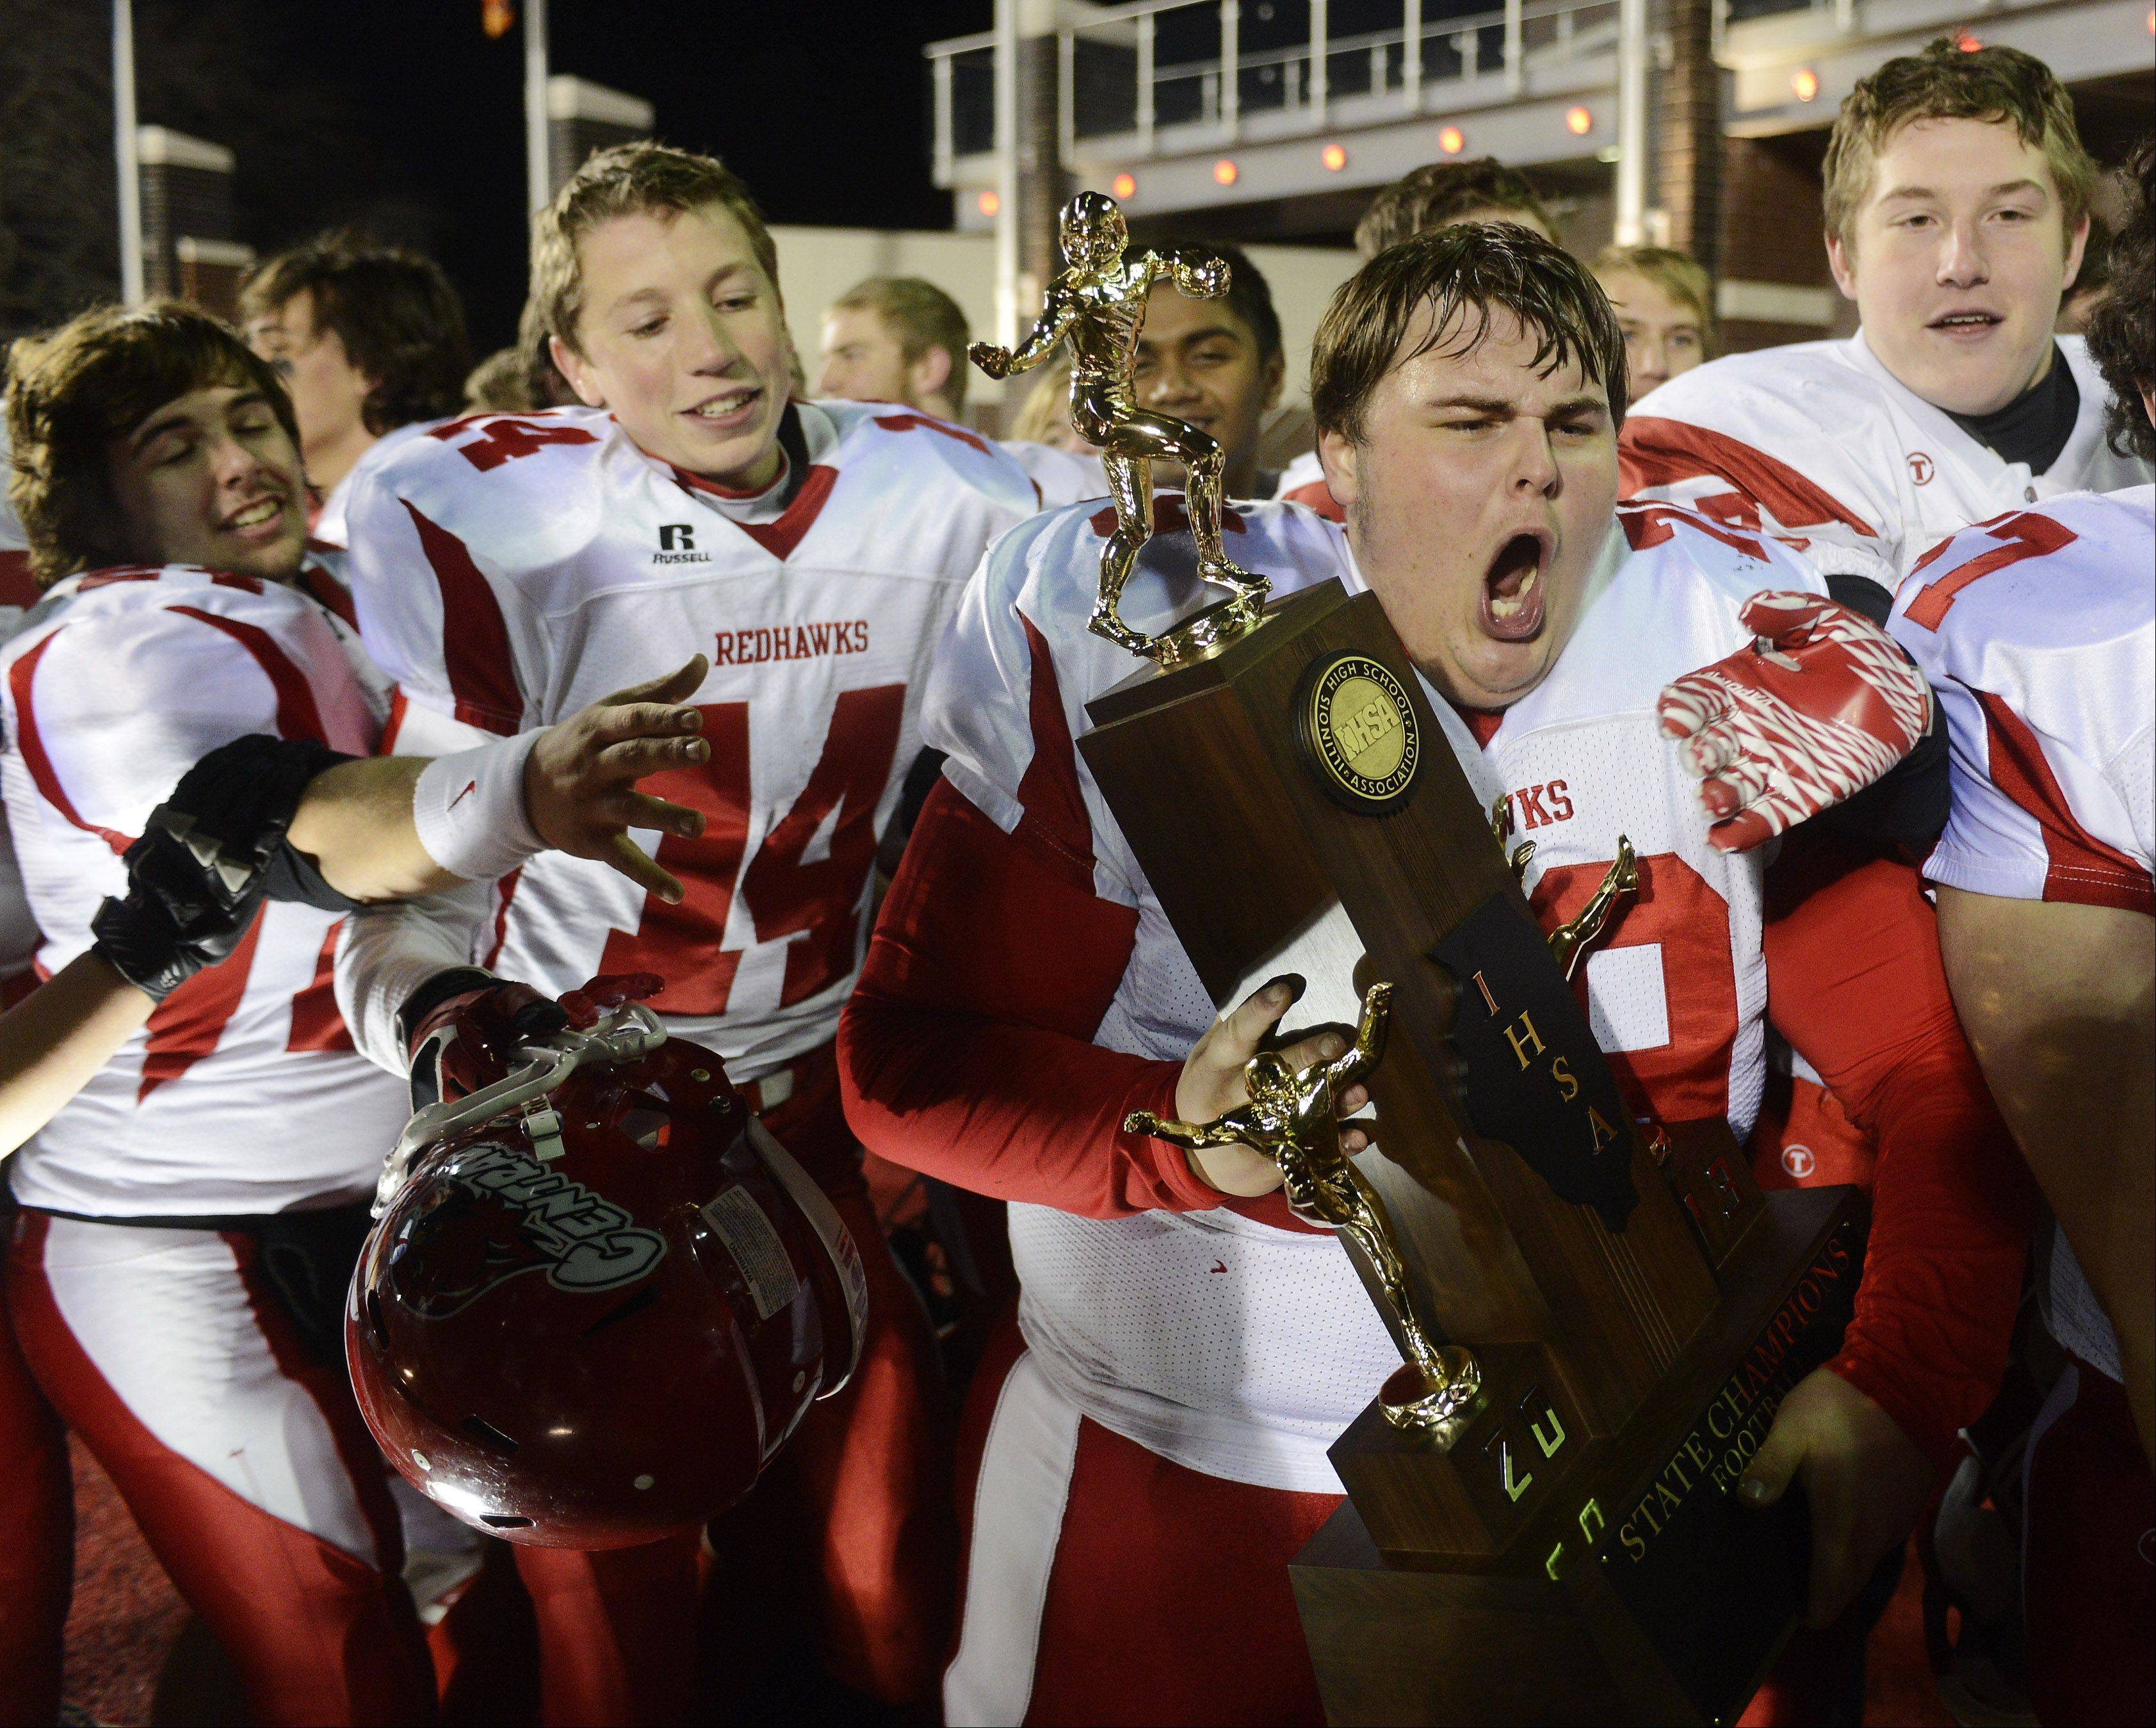 Naperville Central's Chris Wenkel holds the team's championship trophy after defeating Loyola in the Class 8A football final in DeKalb Saturday.